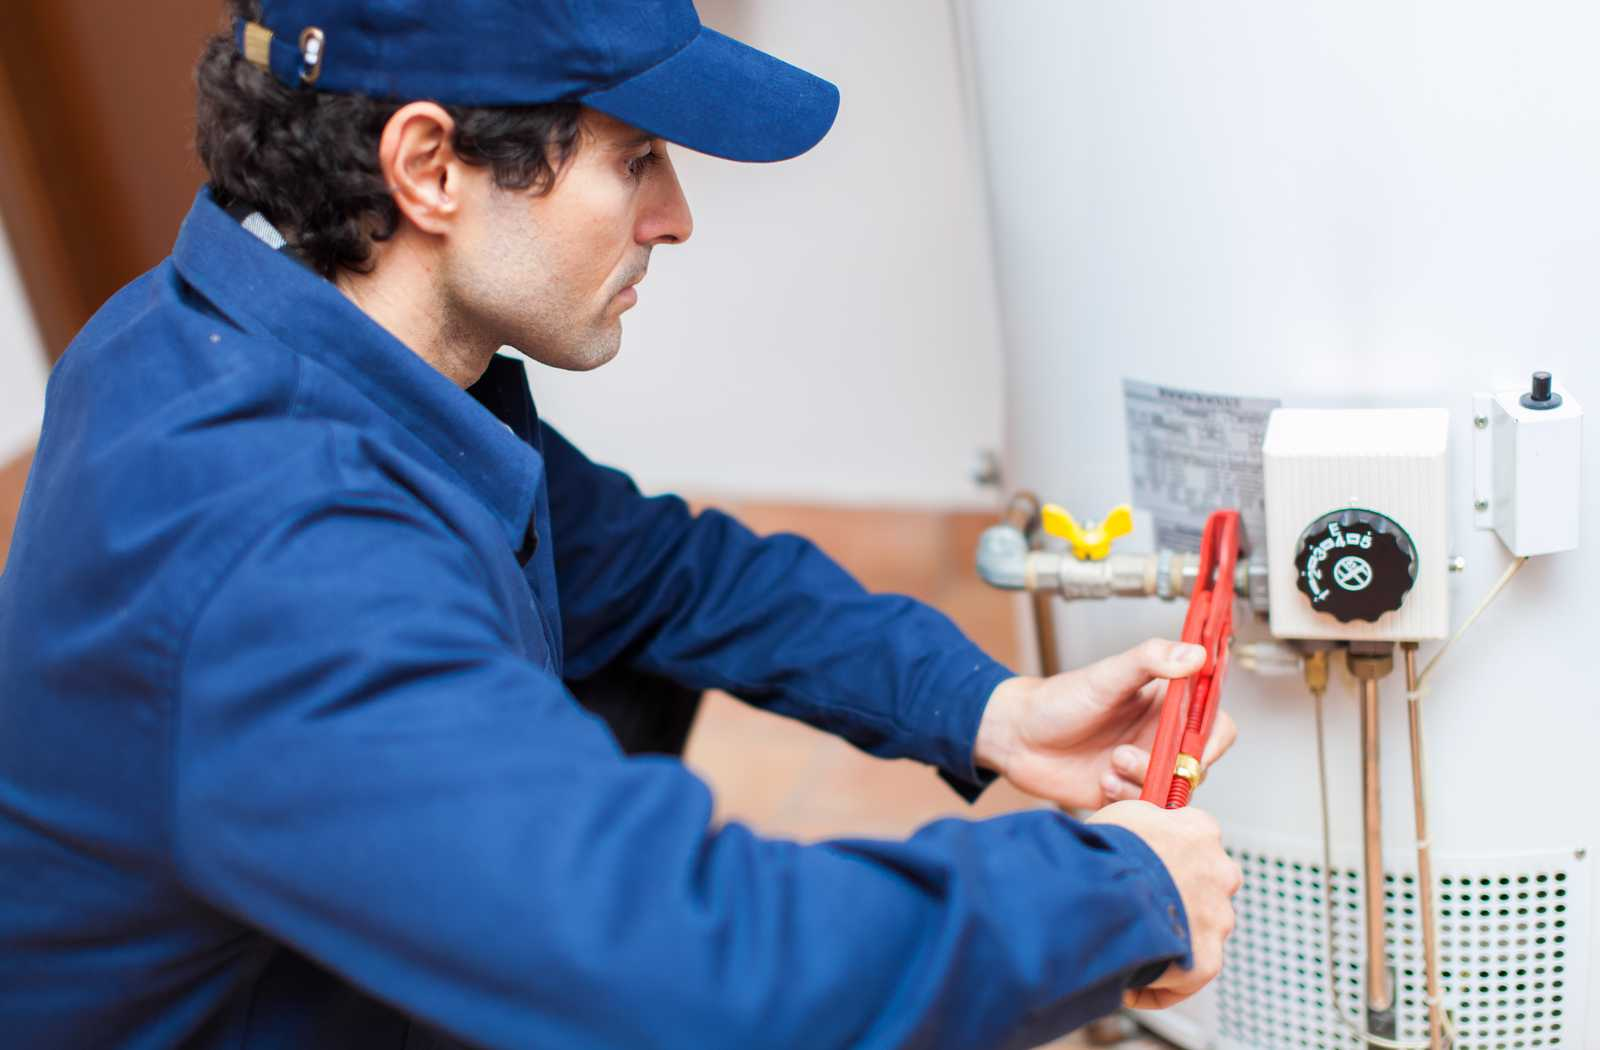 plumber in blue overalls working on white water heater